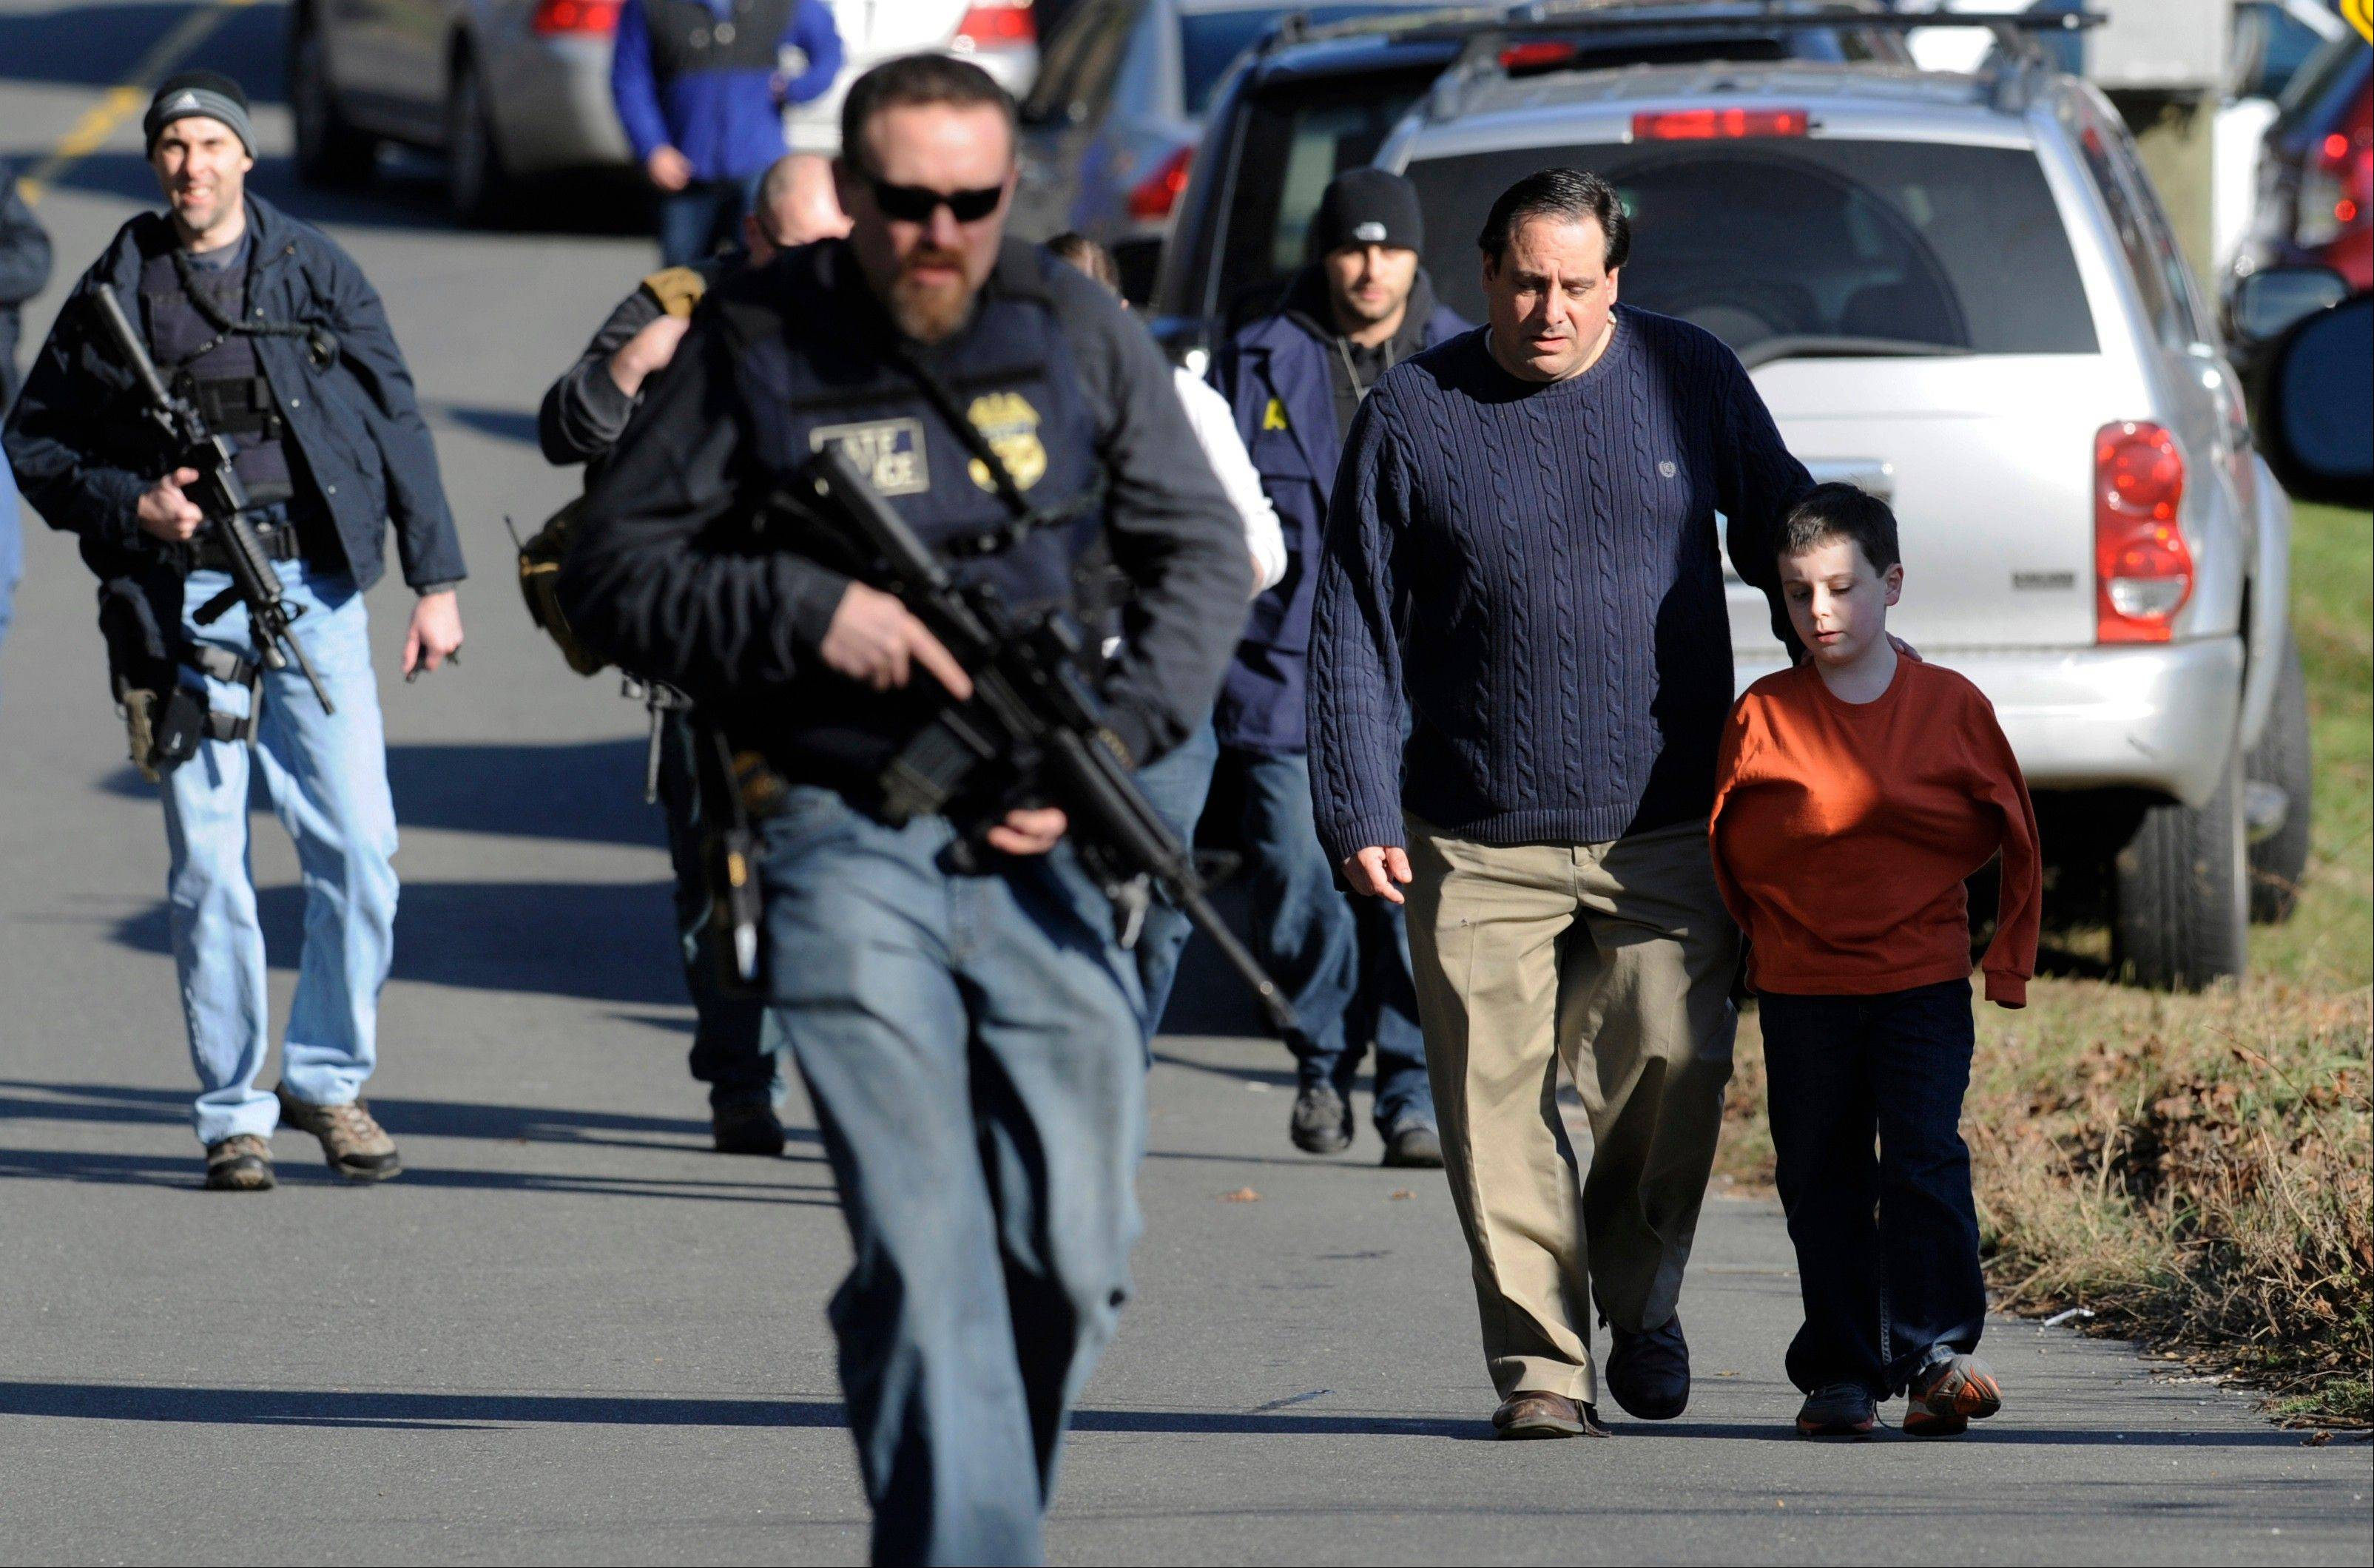 Parents leave a staging area after being reunited with their children following a shooting at the Sandy Hook Elementary School in Newtown, Conn., where a gunman fatally shot 27 people, including 20 children.